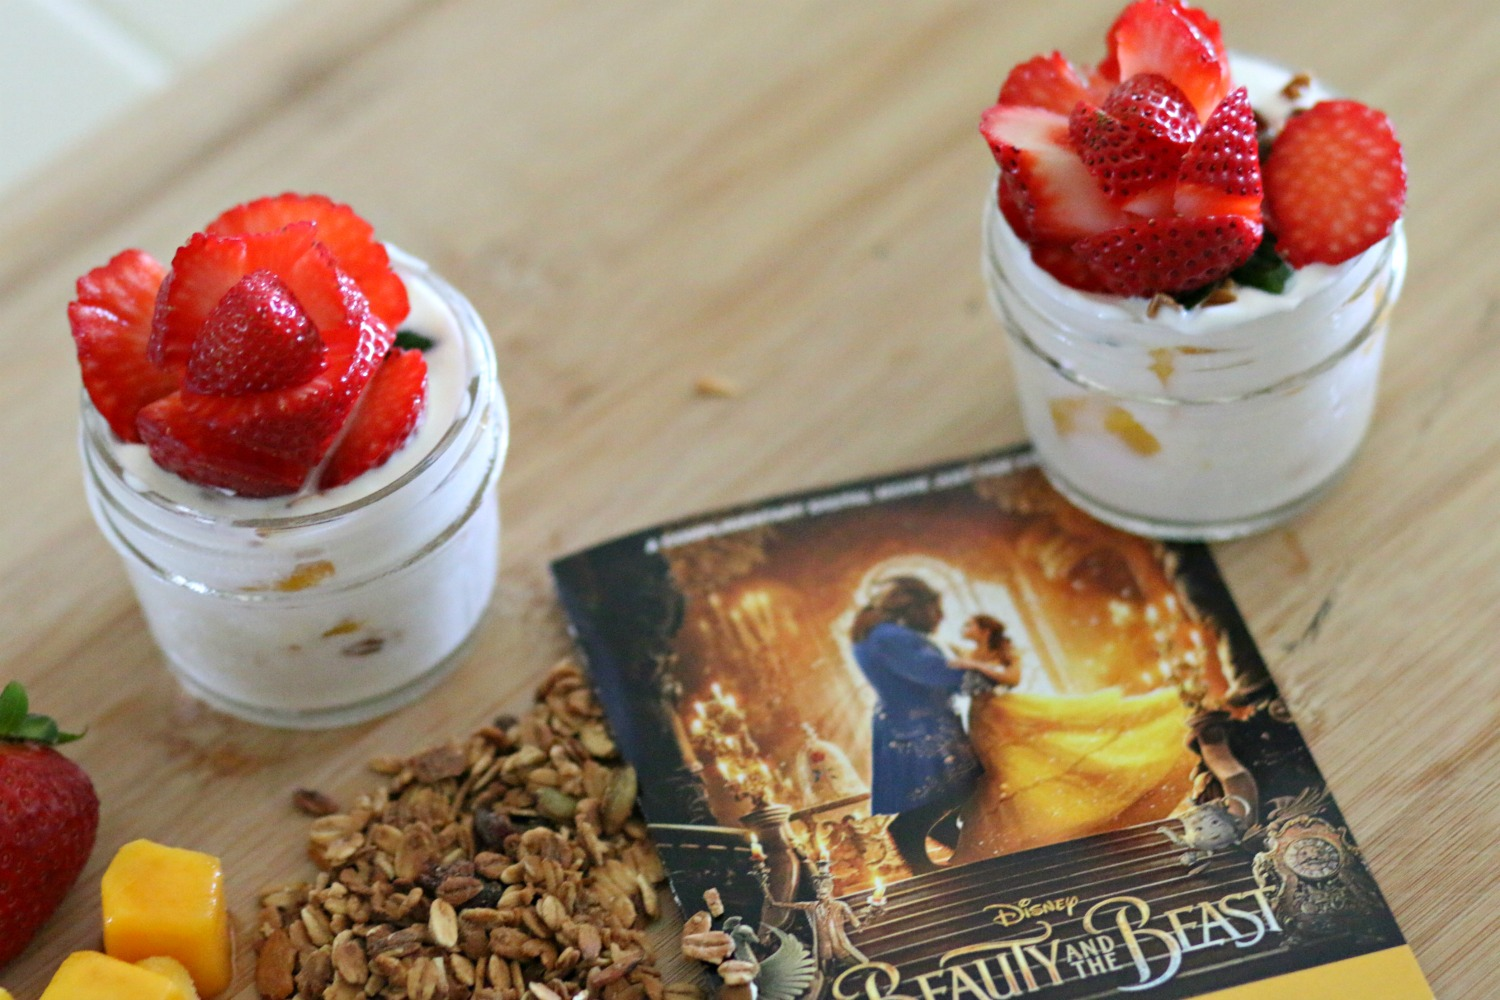 Beauty and the Beast recipe